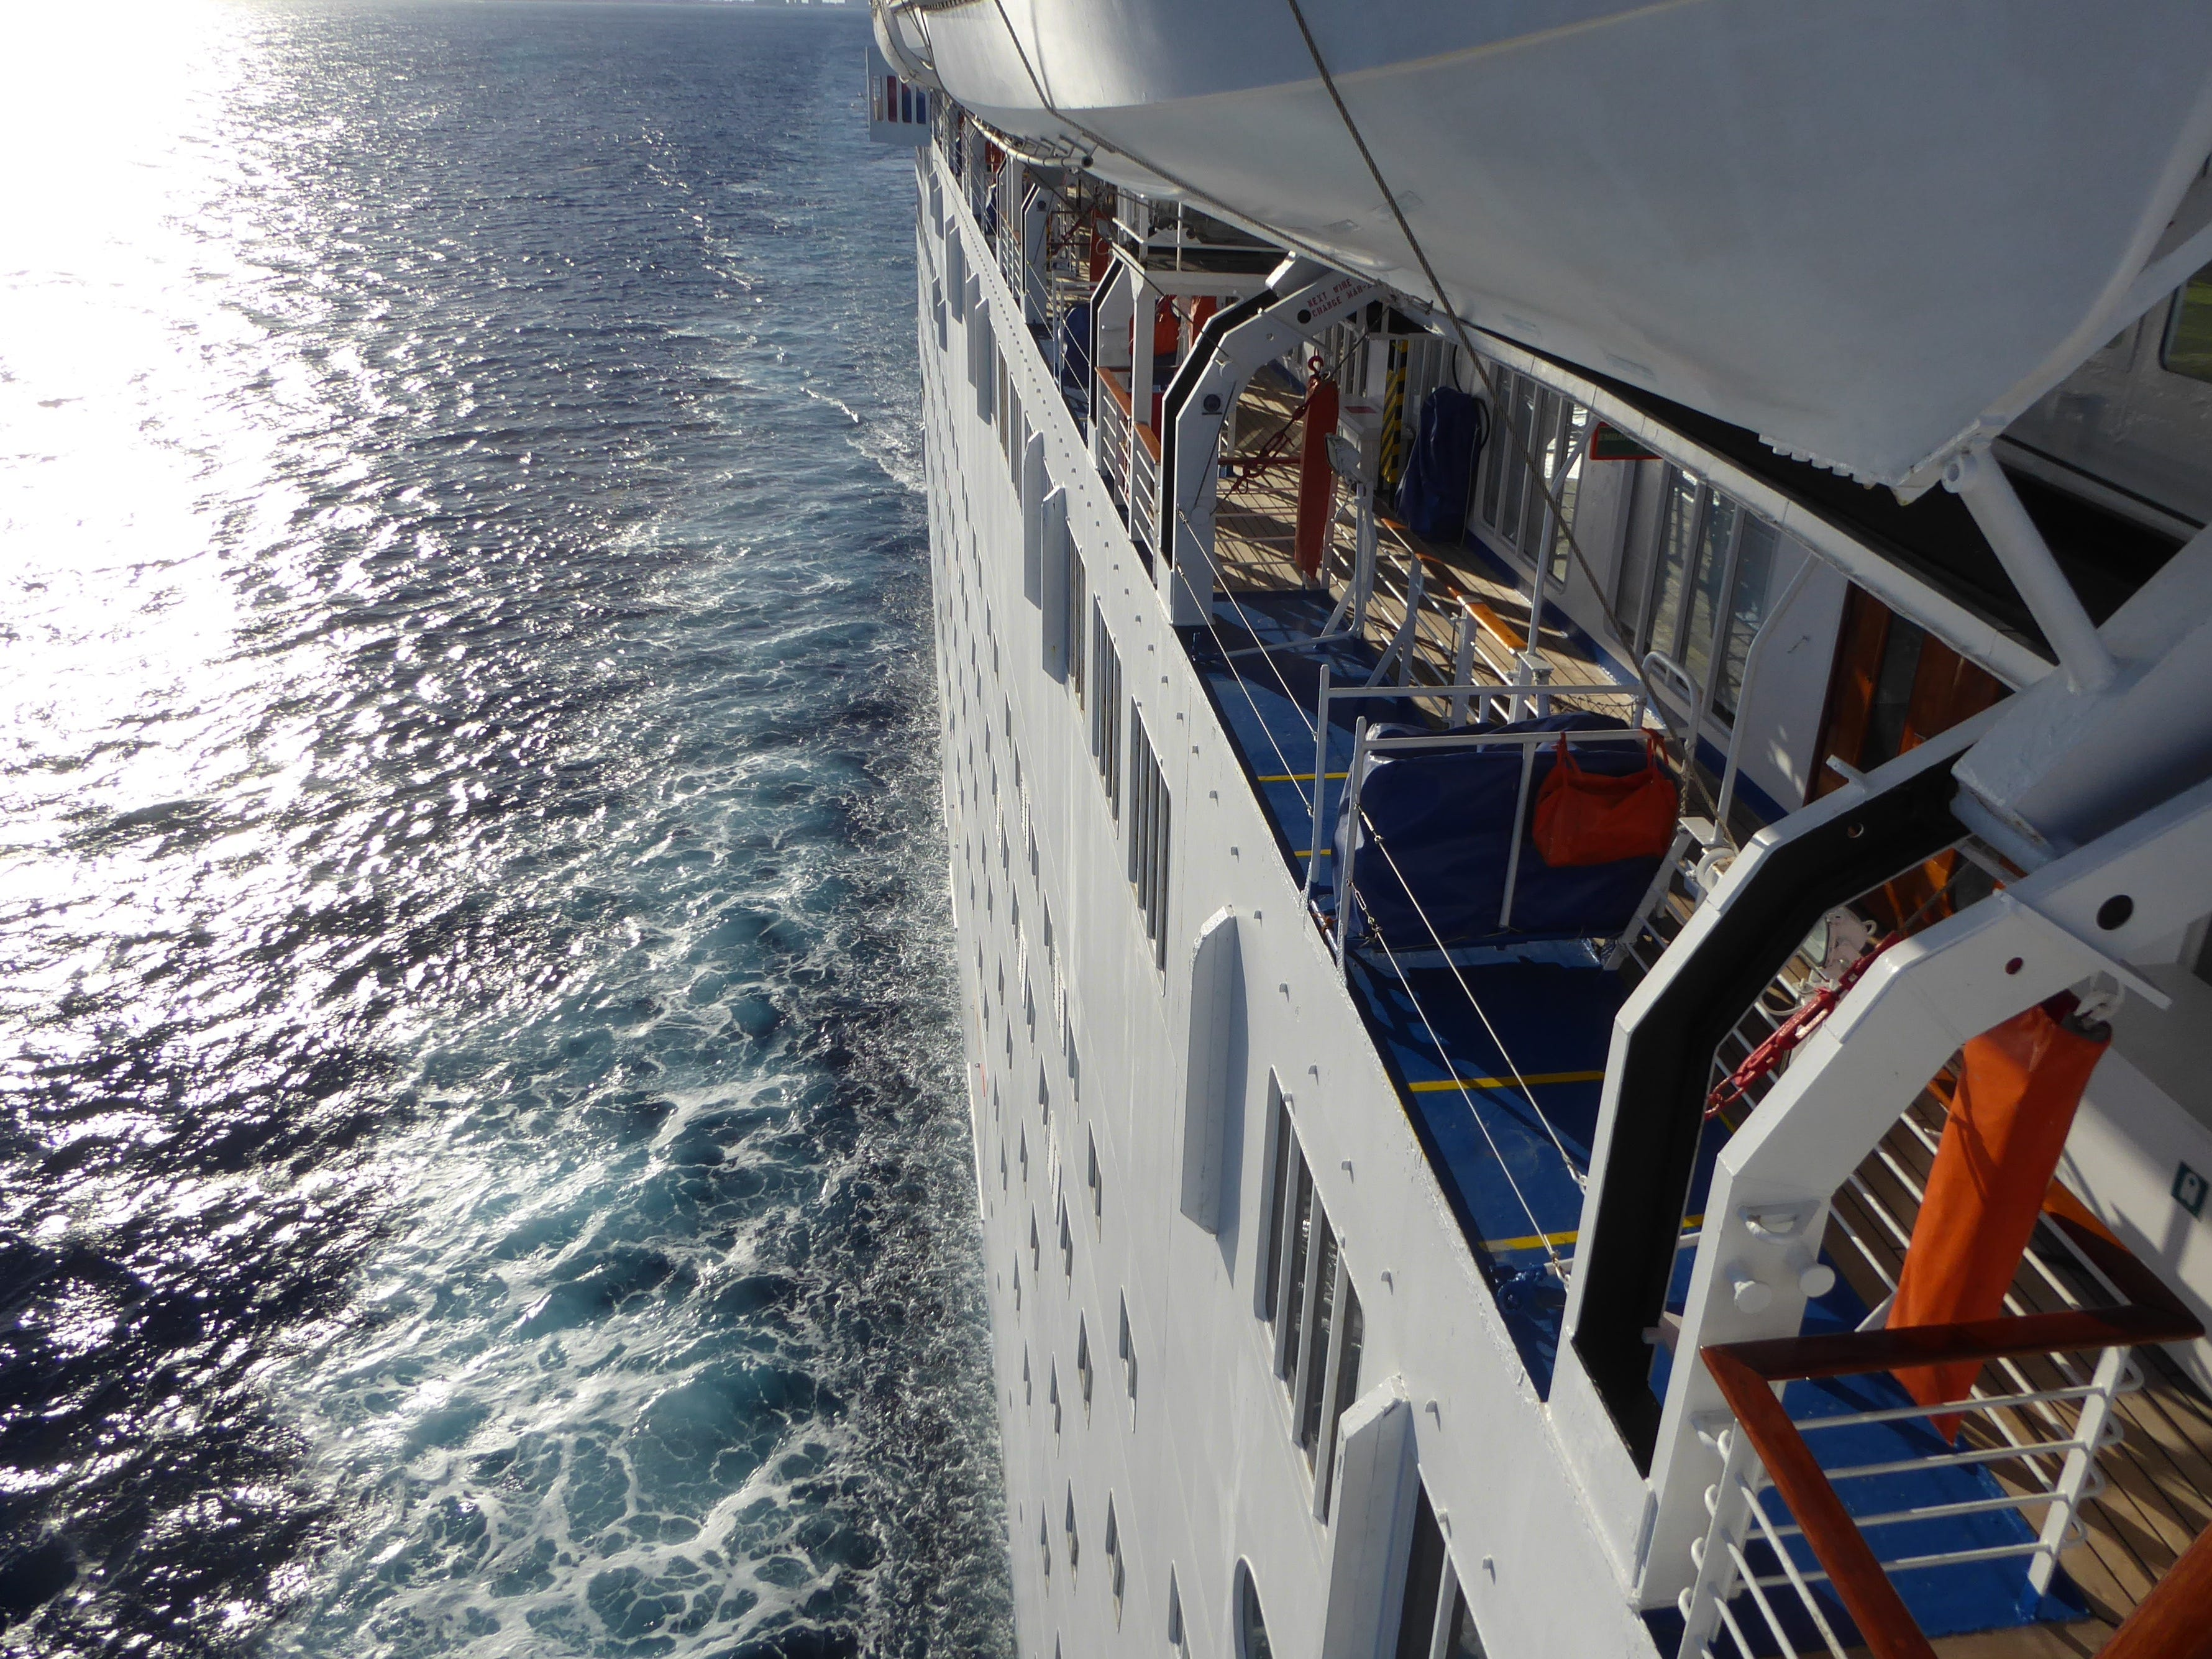 Slight wings project over the side of the ship on Venus Deck, offering vertiginous views of the sea.